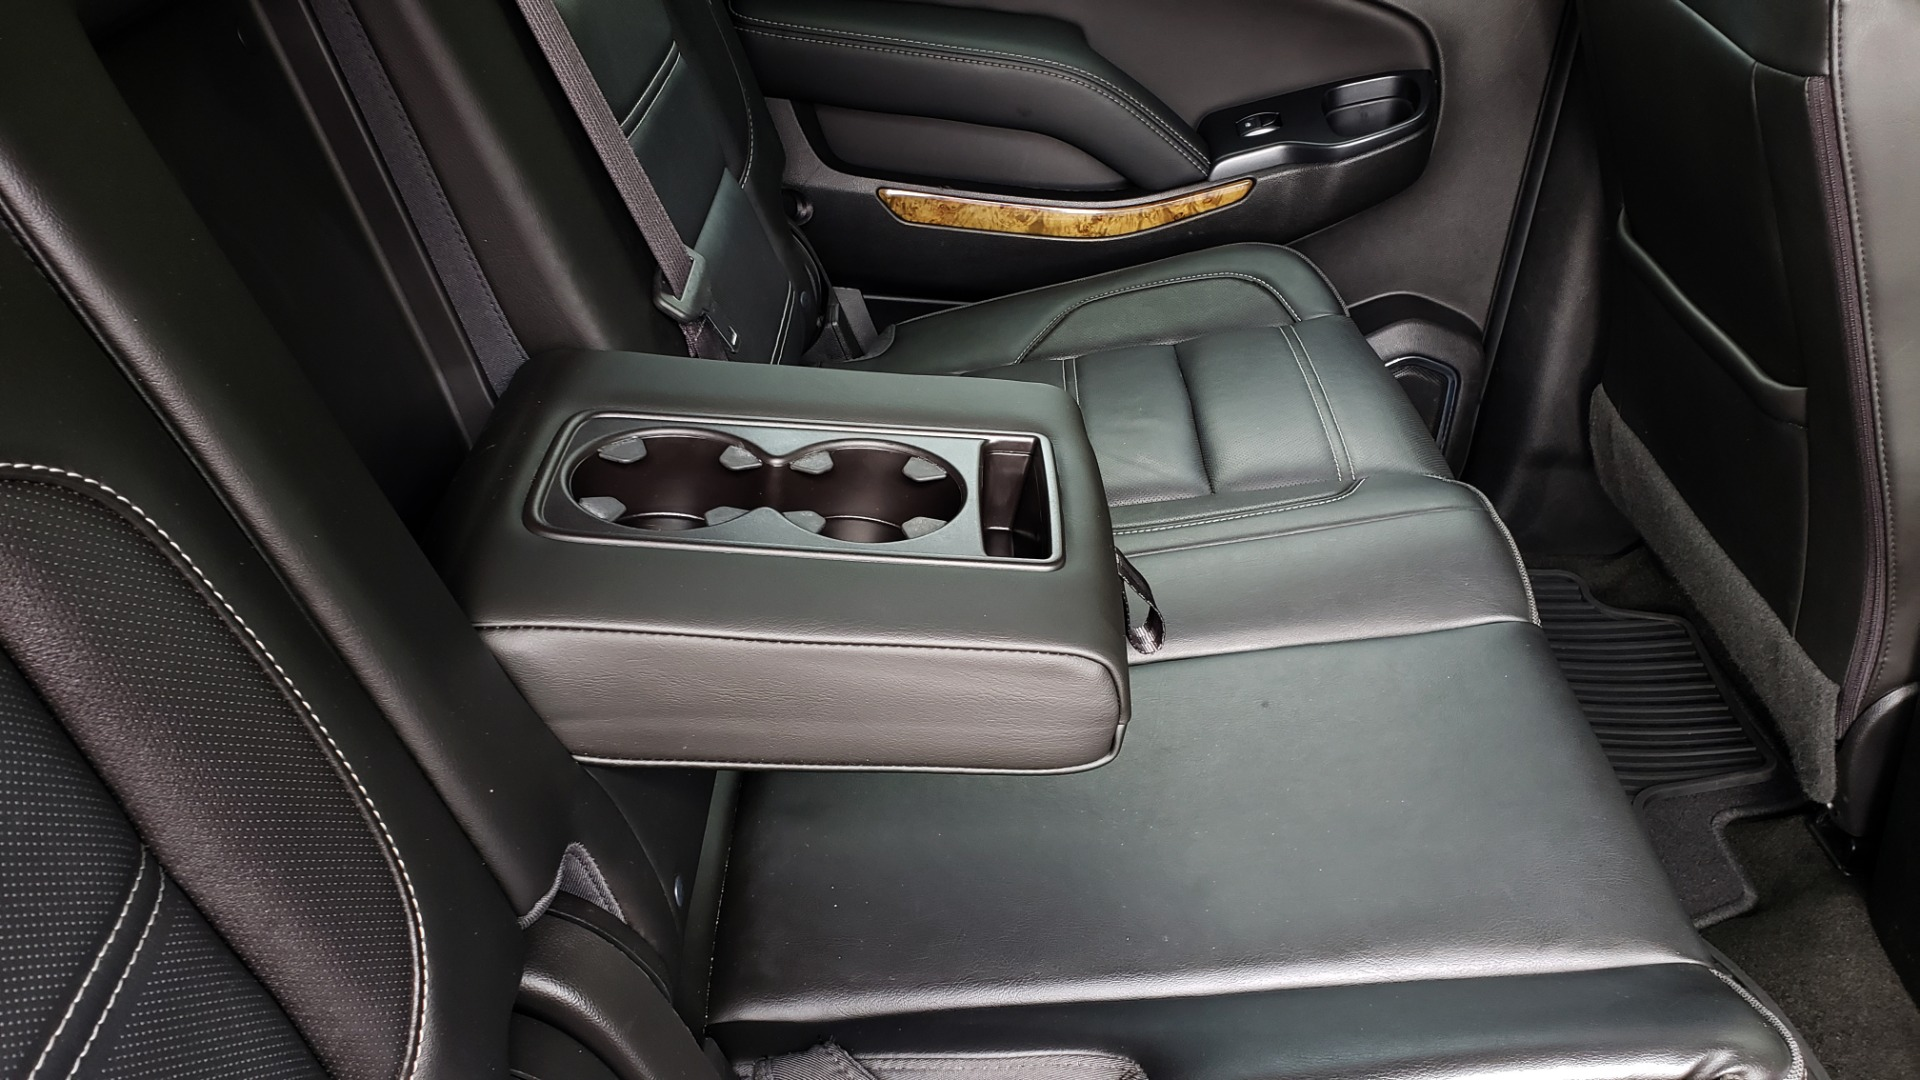 Used 2017 GMC YUKON XL DENALI 4WD / NAV / SUNROOF / ENT / 3-ROWS / BOSE / REARVIEW for sale Sold at Formula Imports in Charlotte NC 28227 85